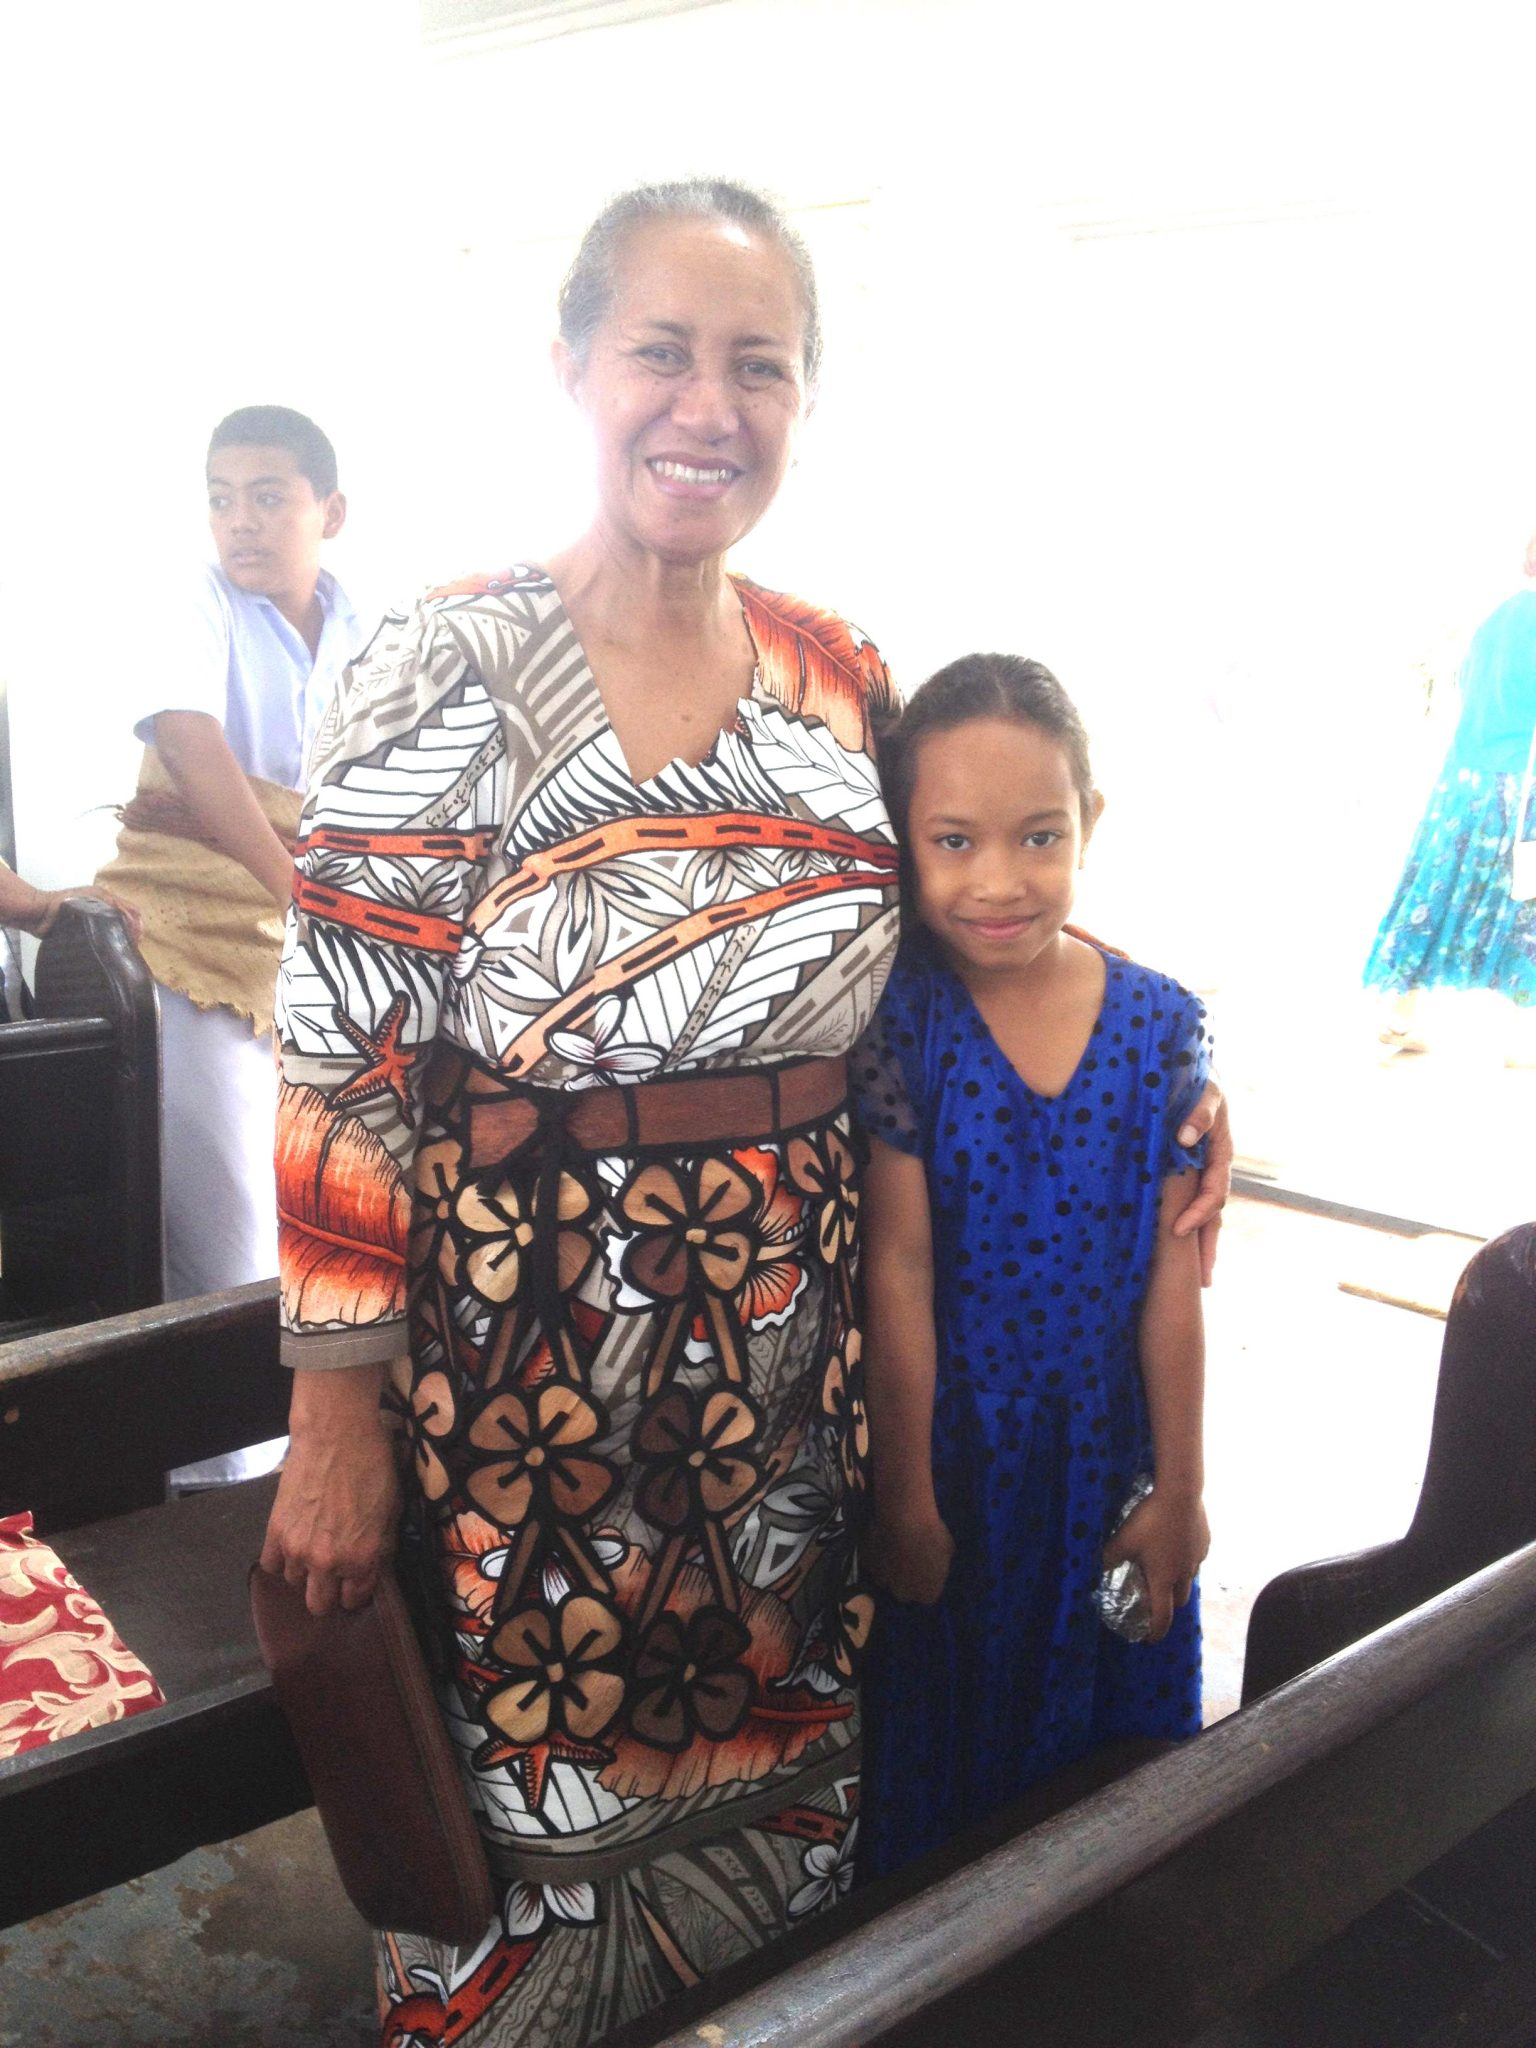 13. This beautiful Tongan grandmother and granddaughter attended the Wesleyan Church service together. The Tongan woman is wearing a woven sash indicating allegance to the crown.